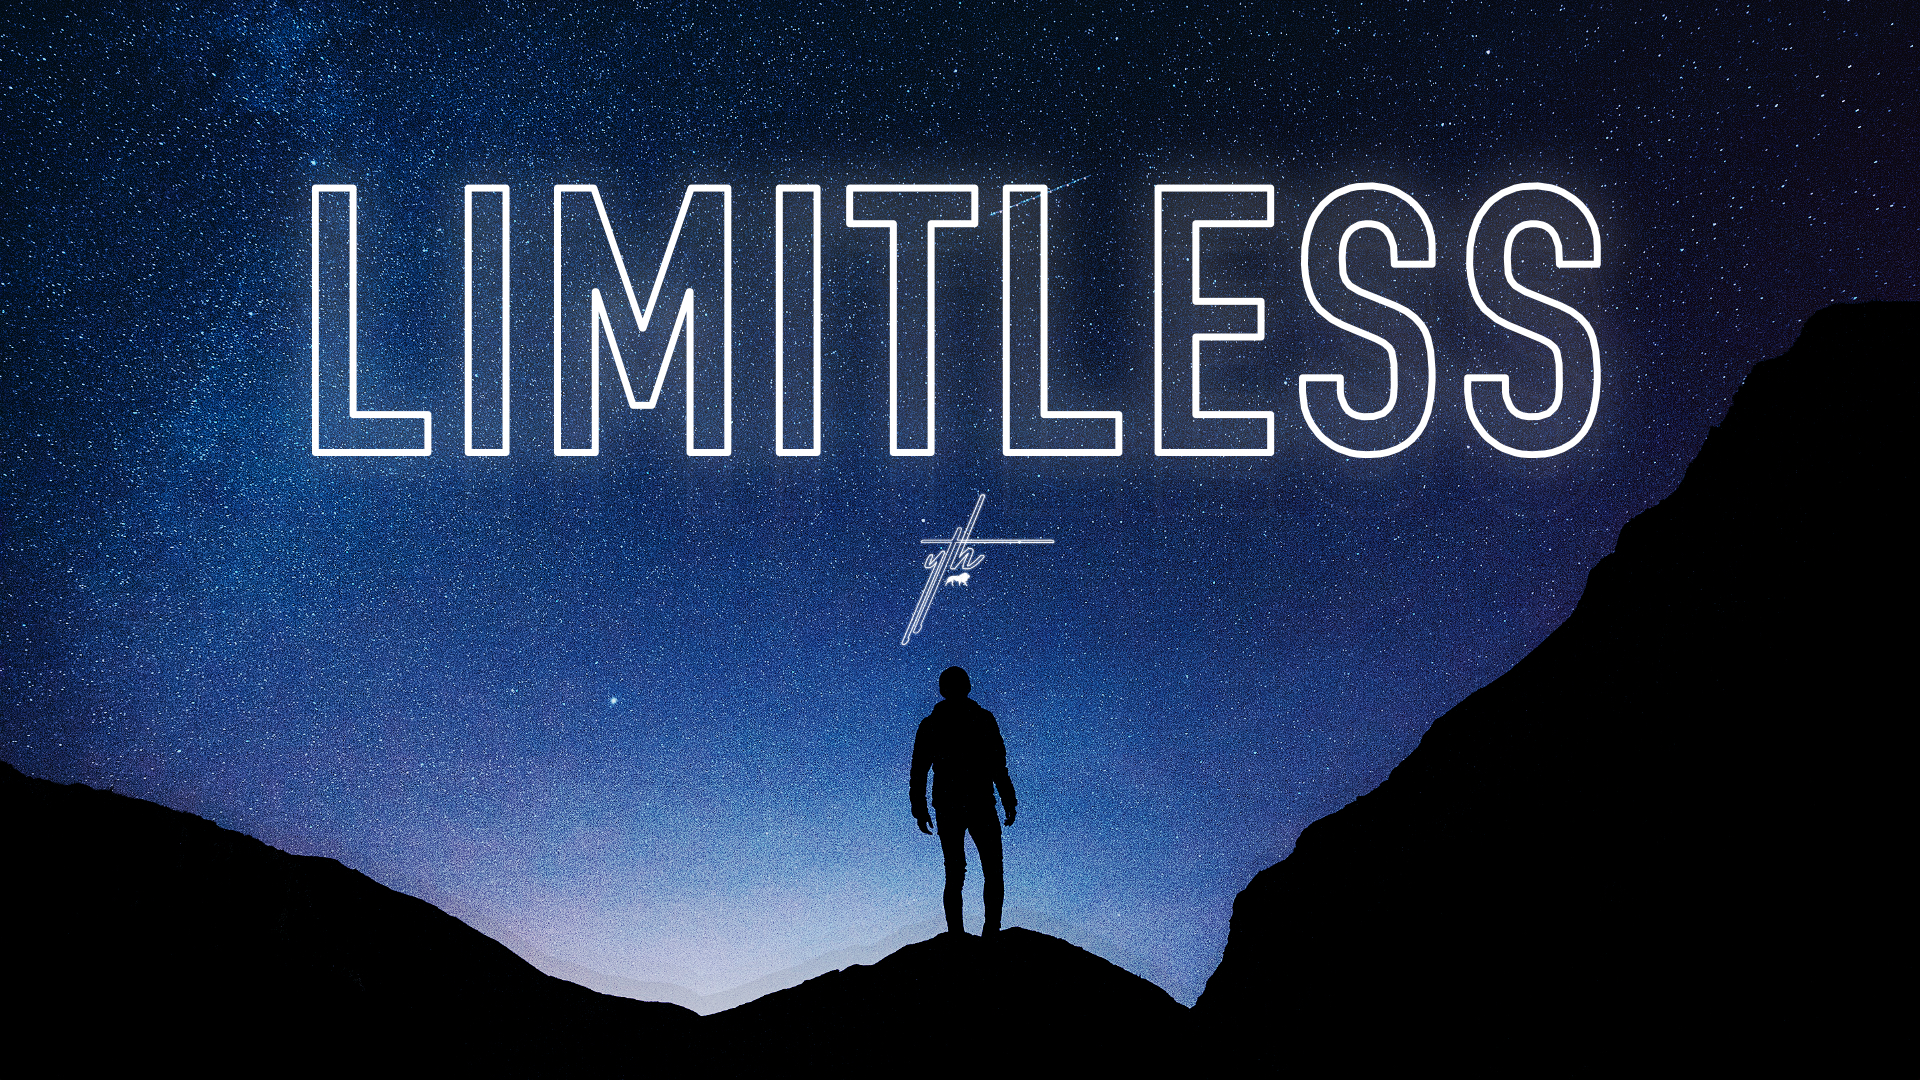 Limitless-Wide.jpg